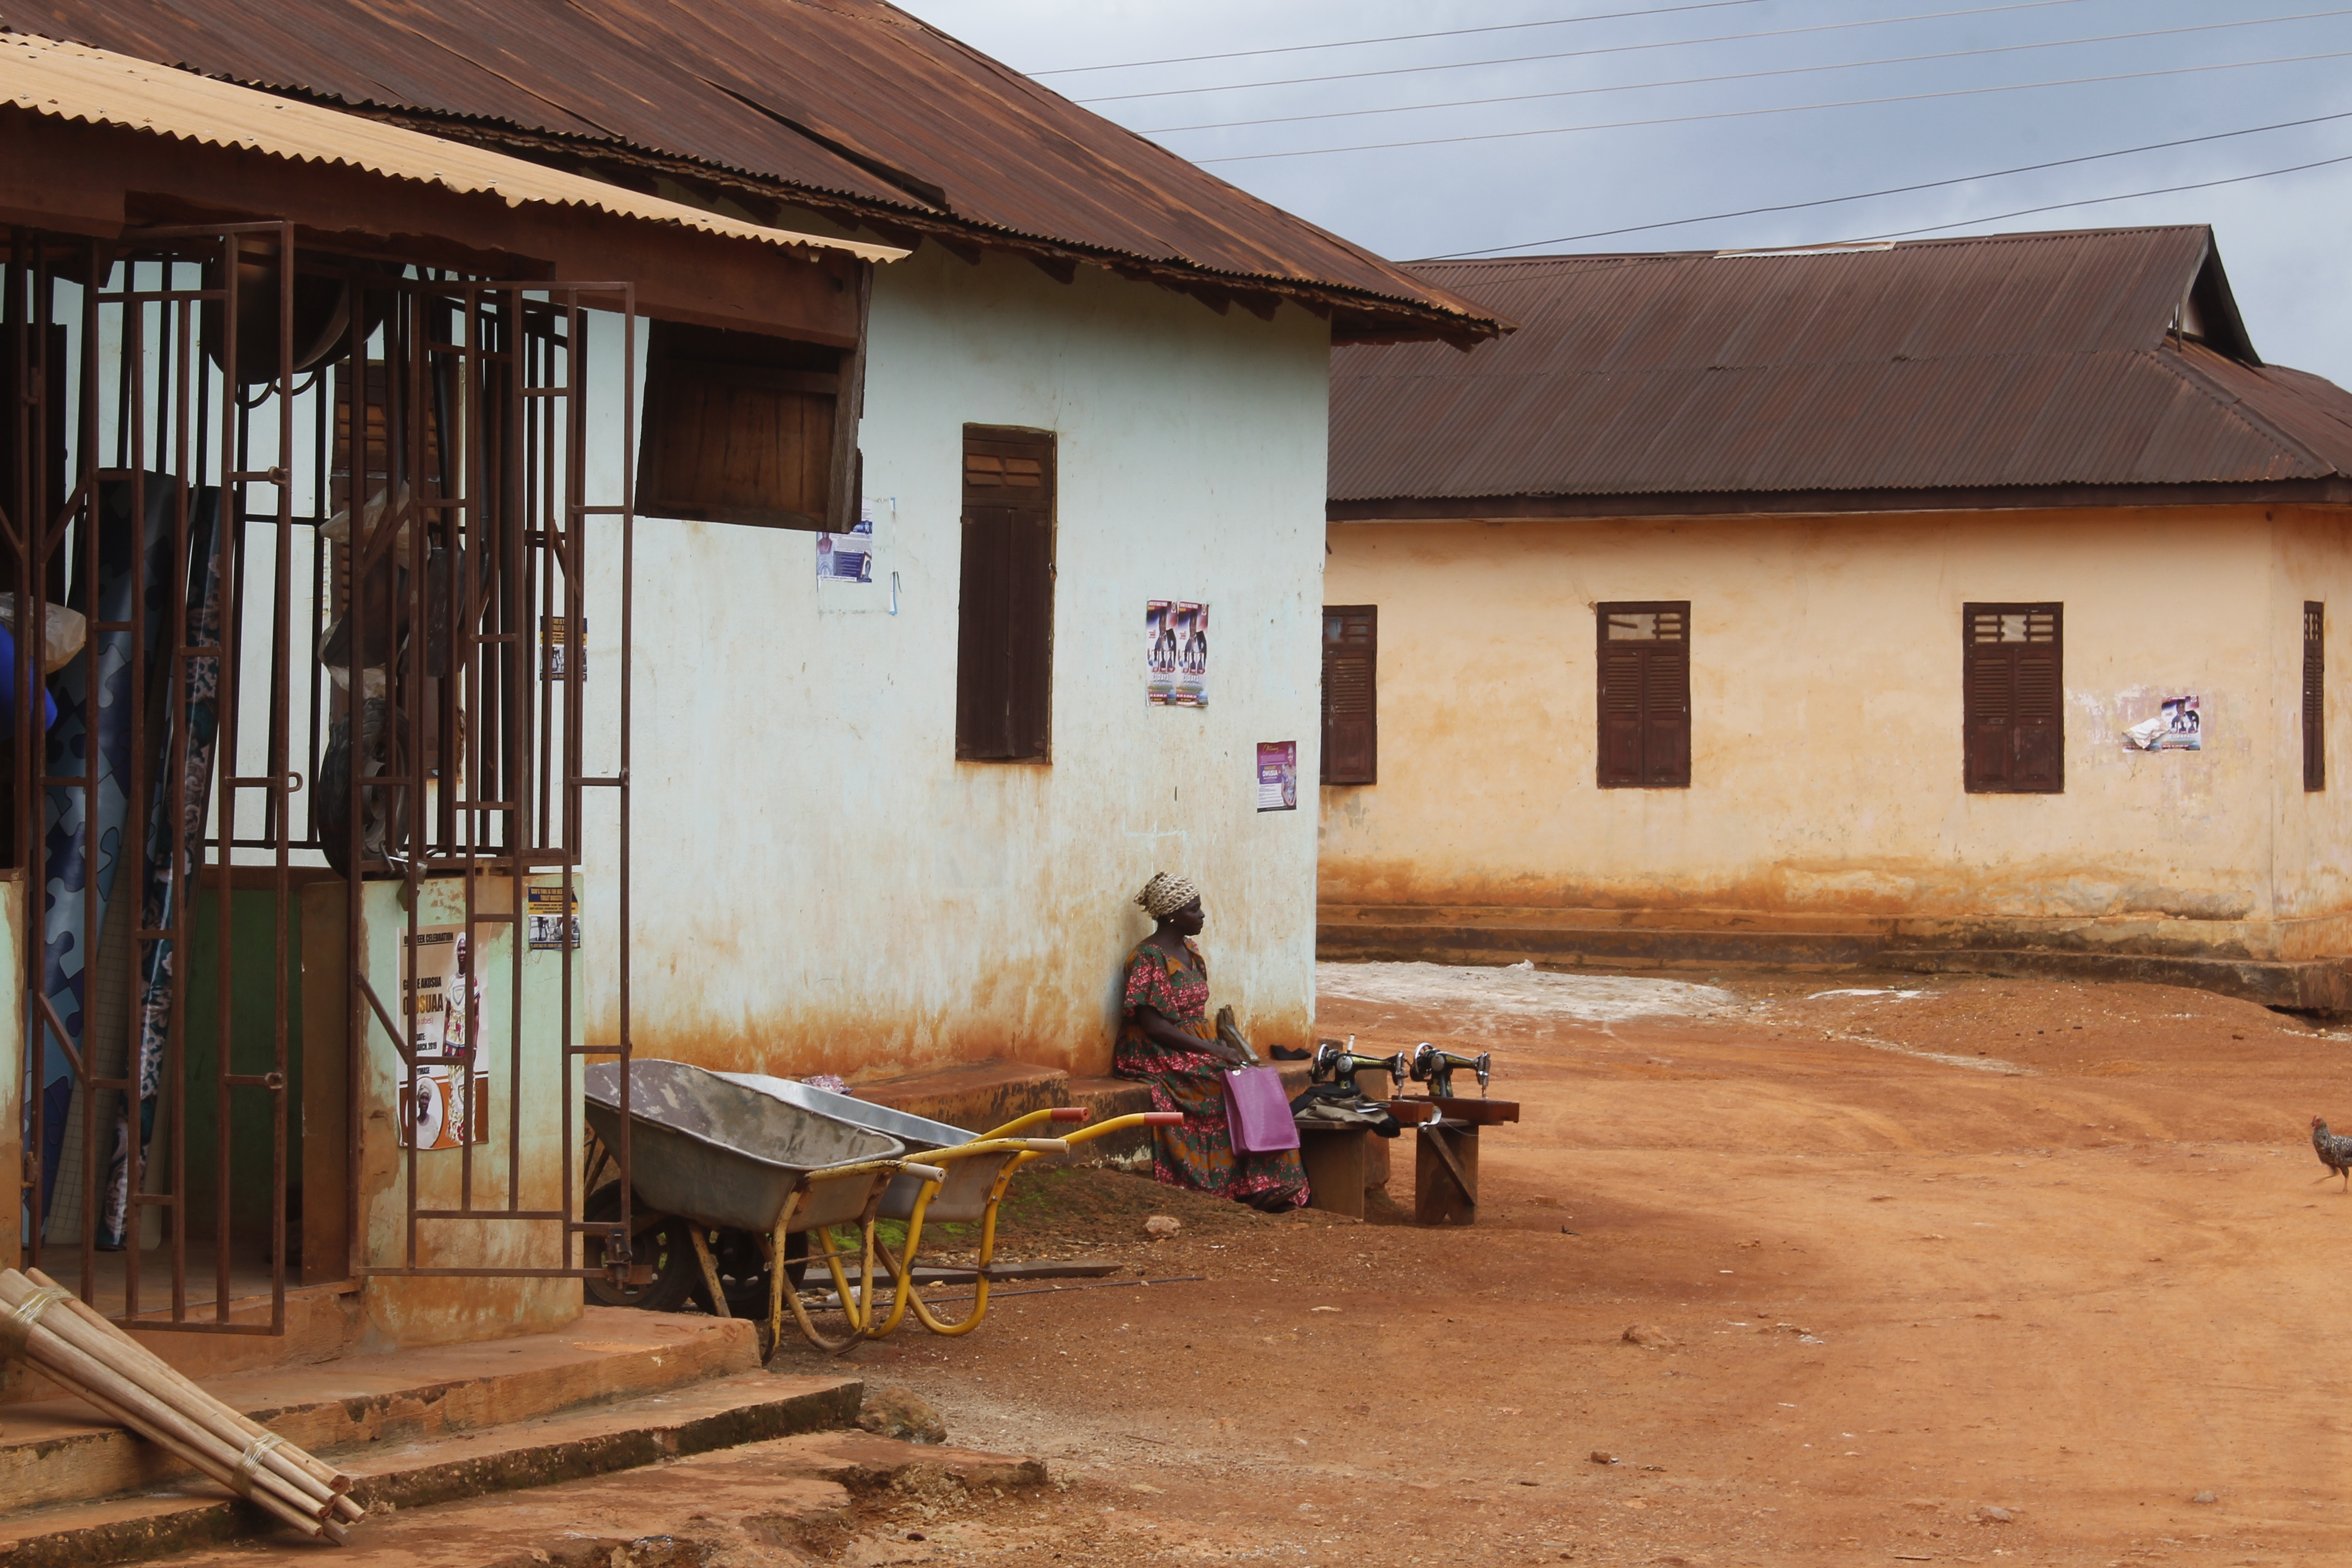 Communities around Ghana's Atewa forest reserve in Sagymase, Eastern Region, Ghana, have been affected by a ban on small-scale mining, which employs more than 1 million people and accounts for around 30 percent of the country's mineral output.